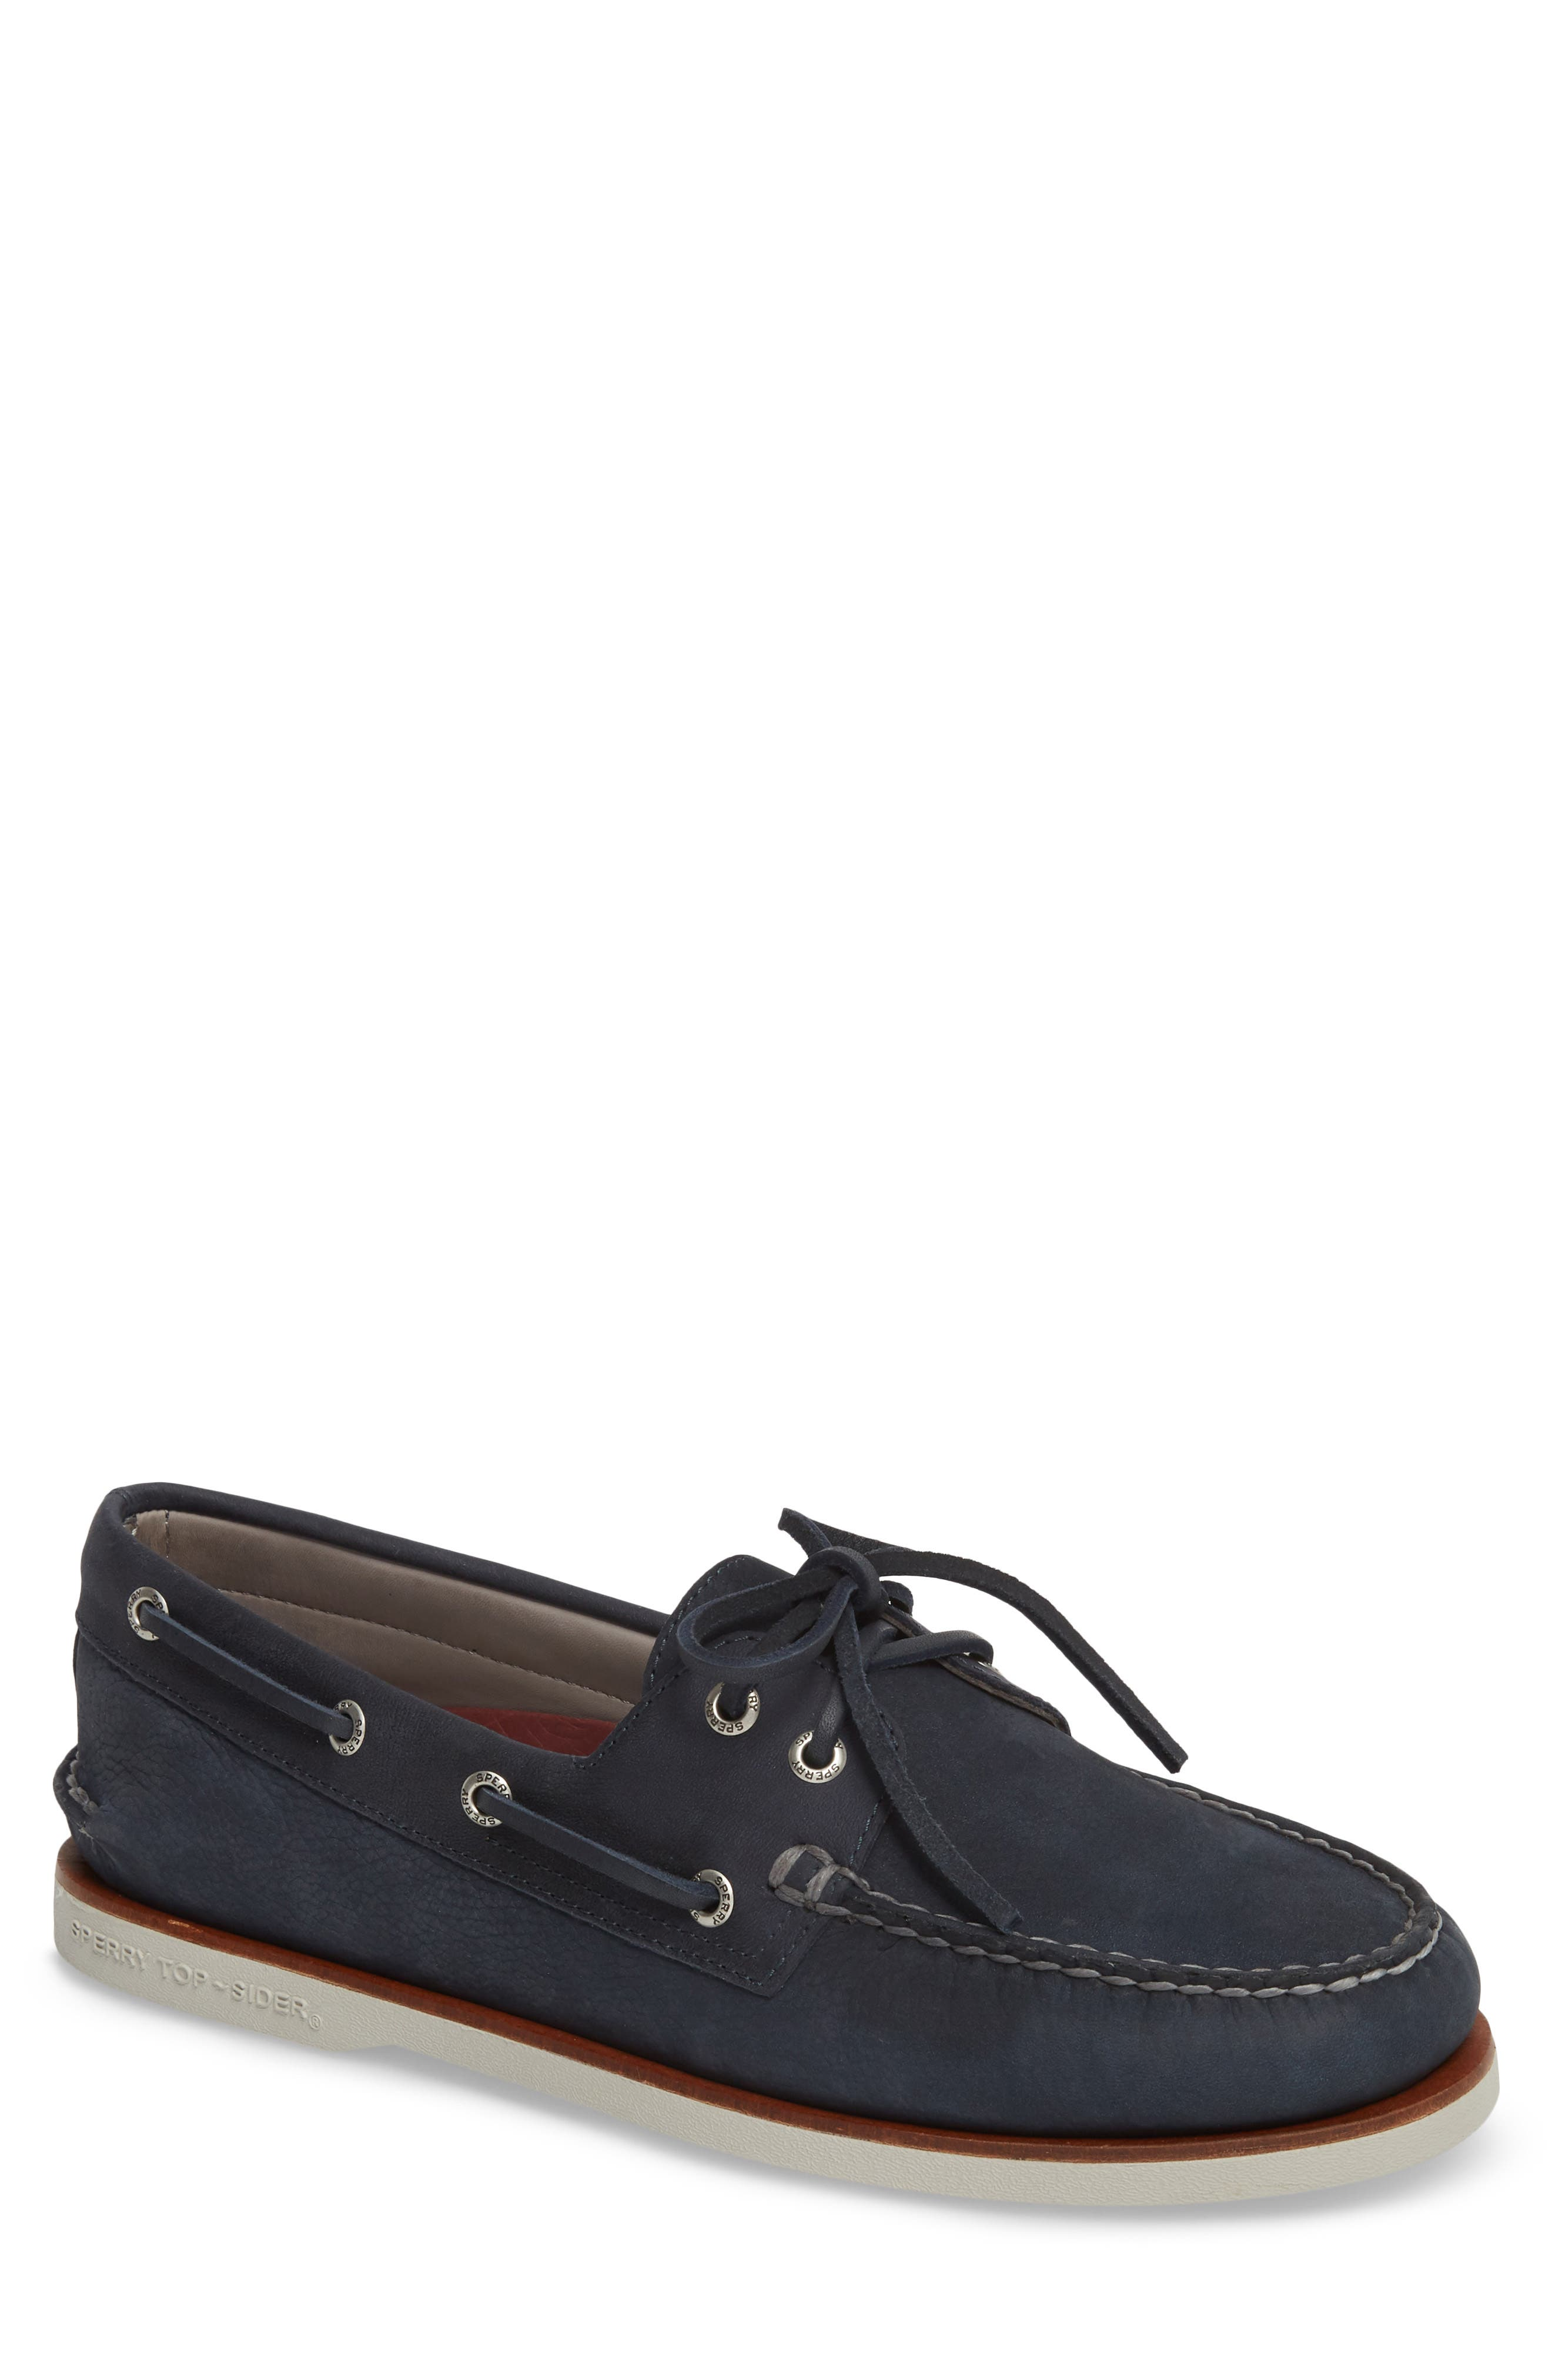 'Gold Cup - Authentic Original' Boat Shoe,                         Main,                         color, BLUE/ NAVY LEATHER